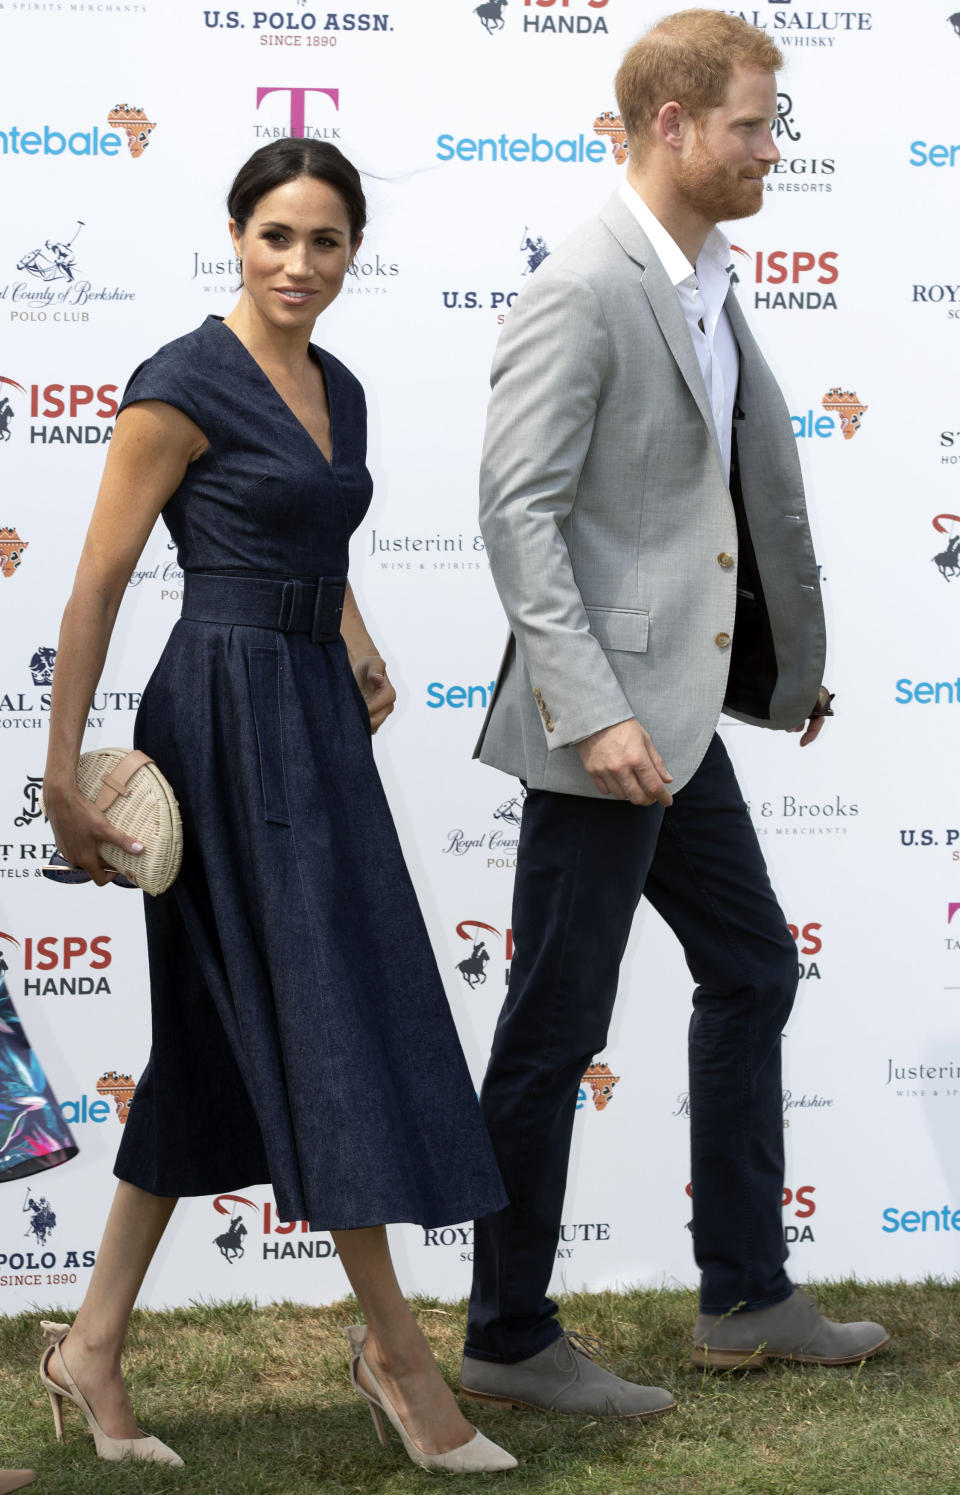 <p>For a surprise appearance at the Sentebale charity polo match on 26 July, the Duchess of Sussex wore a denim midi dress by Carolina Herrera. She teamed the heatwave-appropriate look with a pair of Aquazurra heels, a J Crew clutch and Tom Ford sunnies.<em> [Photo: PA]</em> </p>